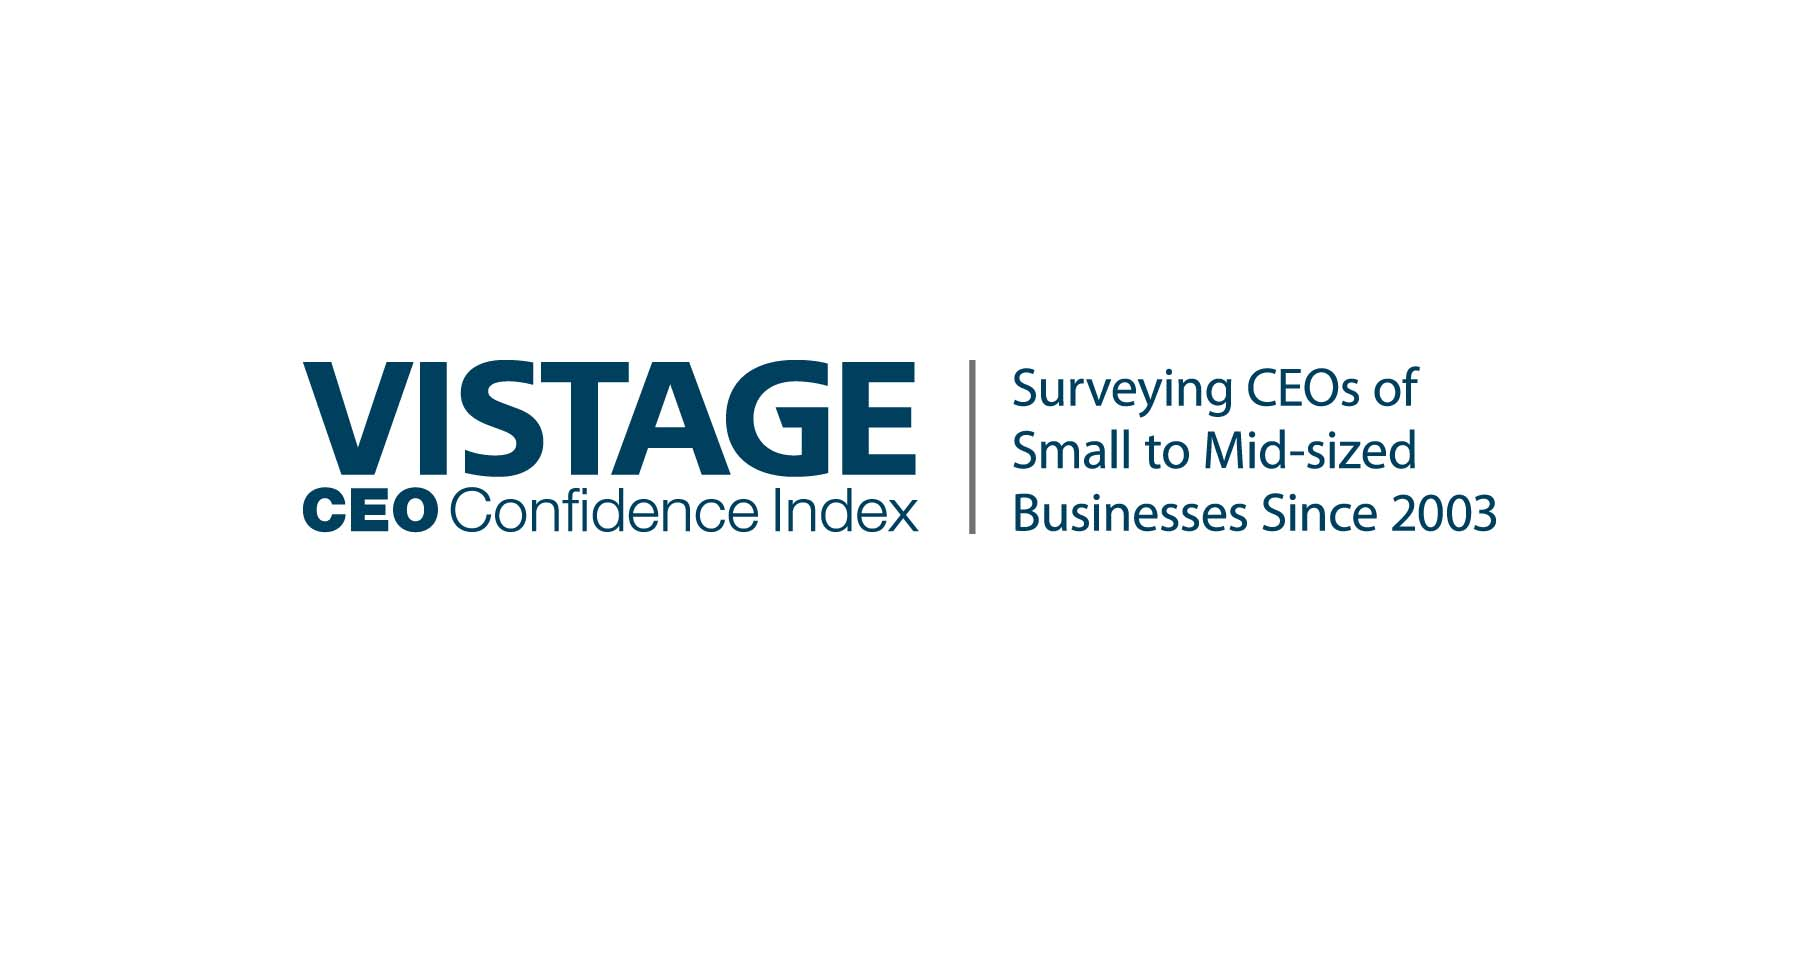 Vistage CEO Confidence Index: Surveying CEOs of Small to Mid-Sized Businesses since 2003.